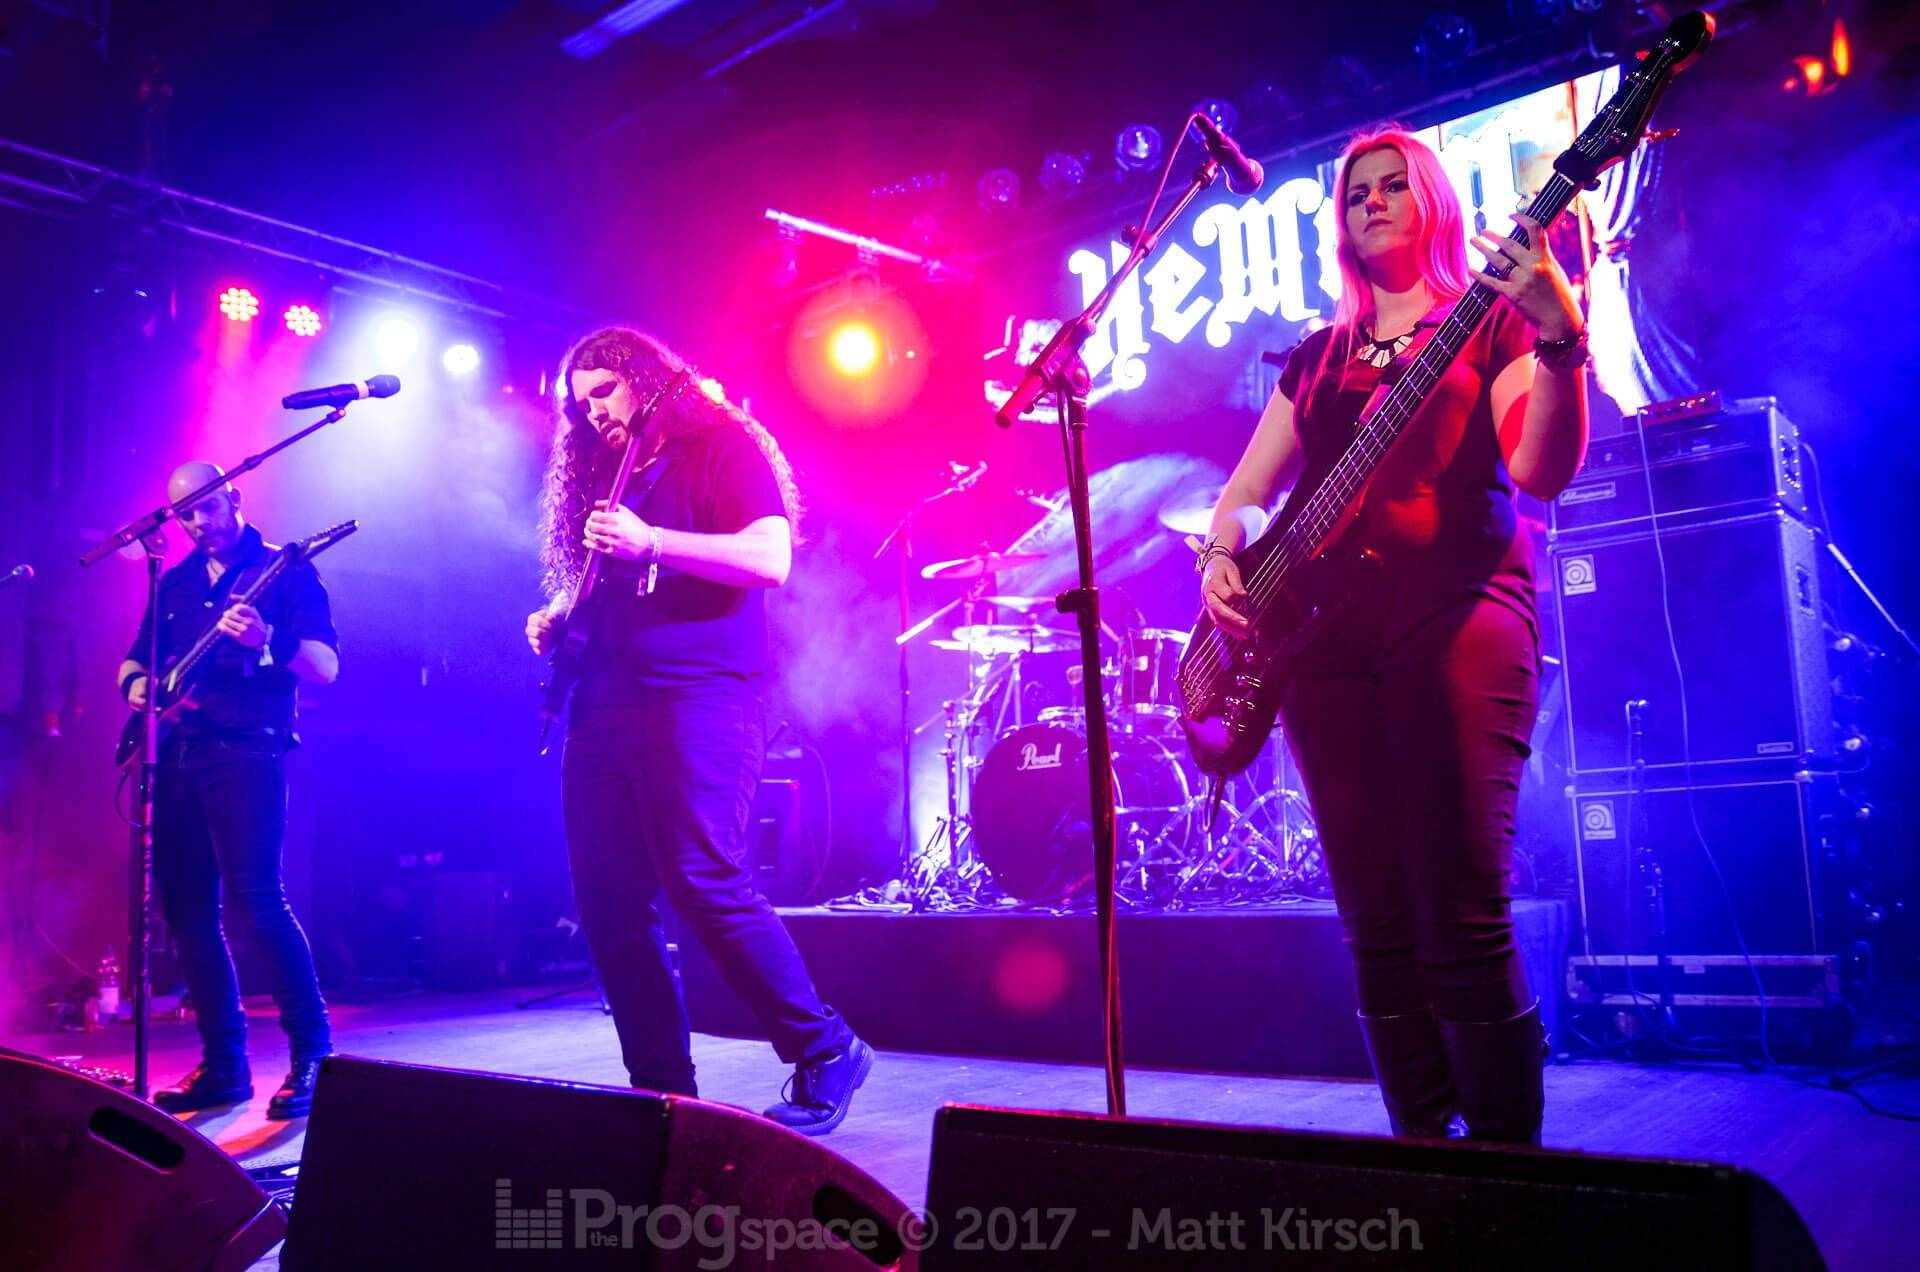 Hemina at Progpower Europe 2017